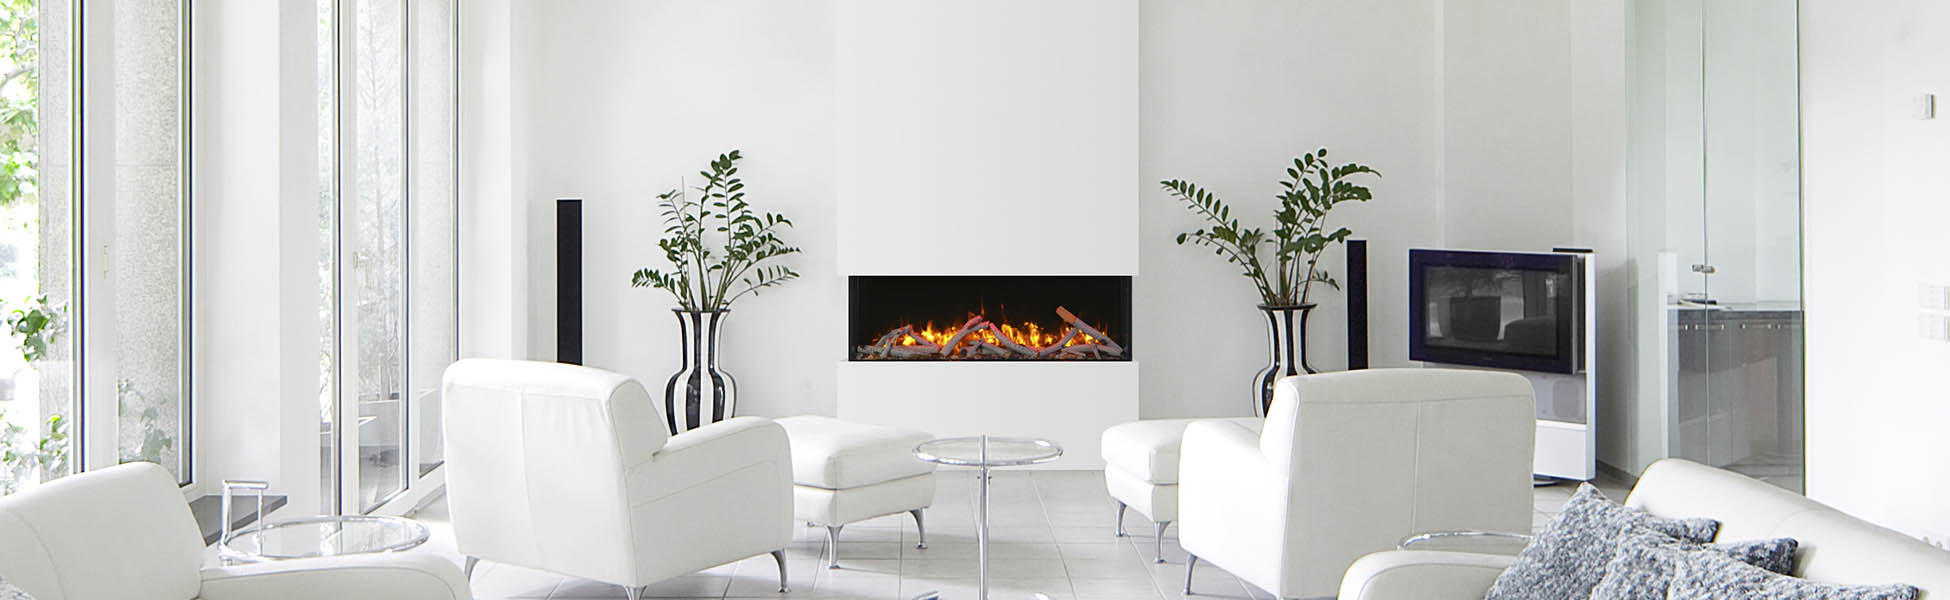 50-tv-slim-birch-white-room-1950x600-2.jpg